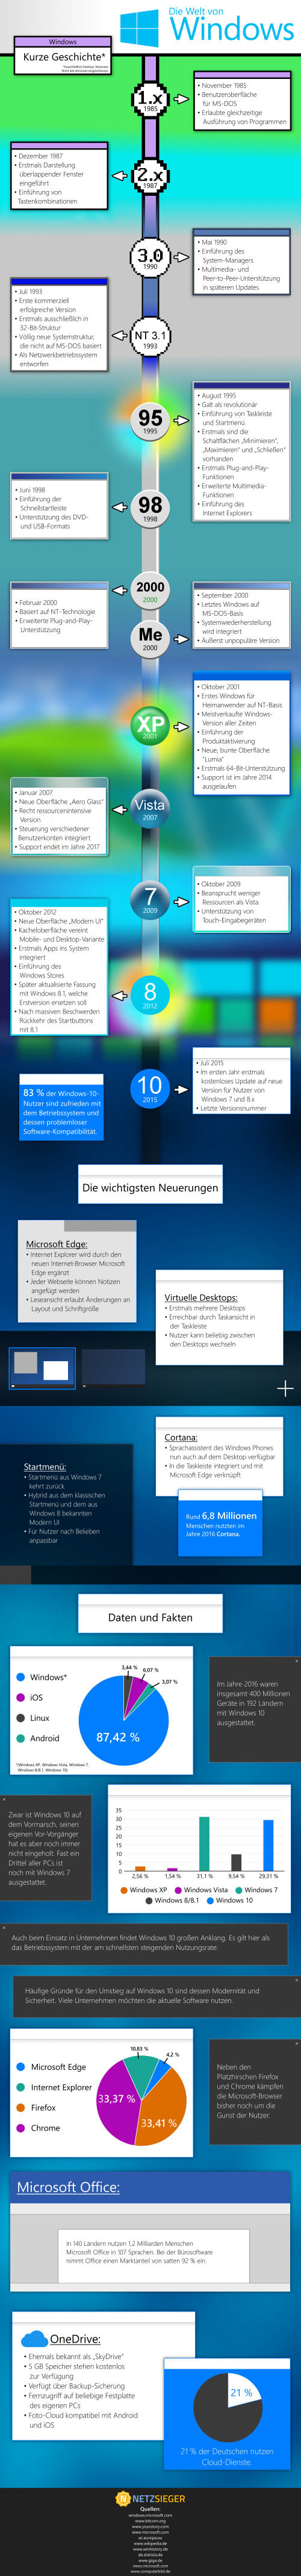 windows-geschichte-infografik